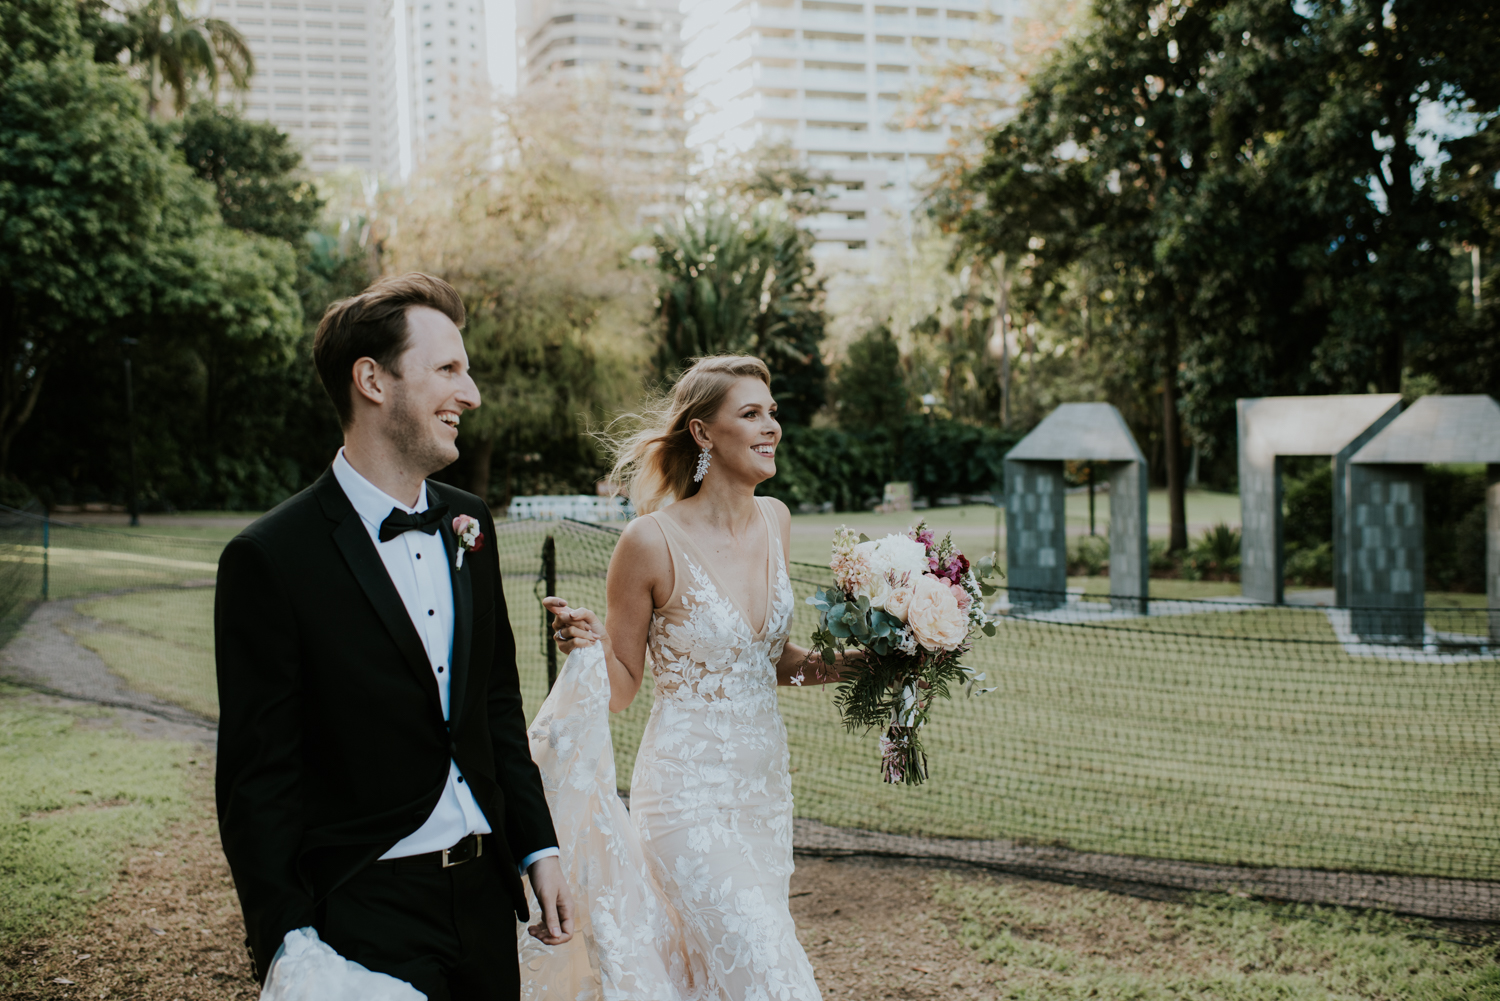 Brisbane Wedding Photographer | Engagement-Elopement Photography | Factory51-City Botantic Gardens Wedding-44.jpg